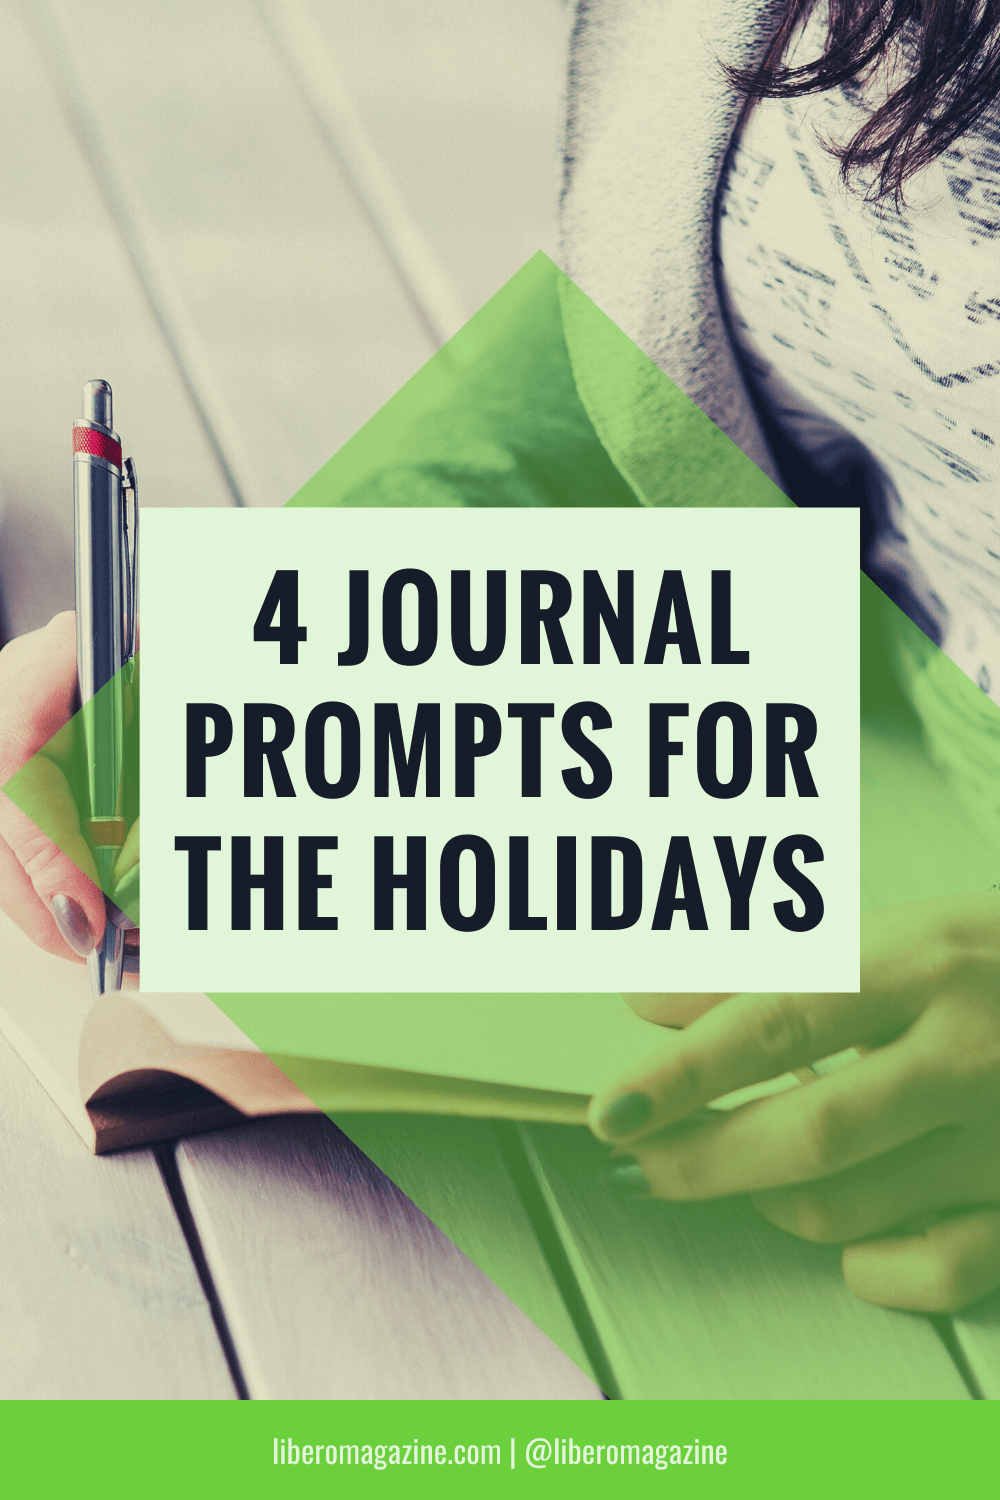 journal prompts for holidays (3)